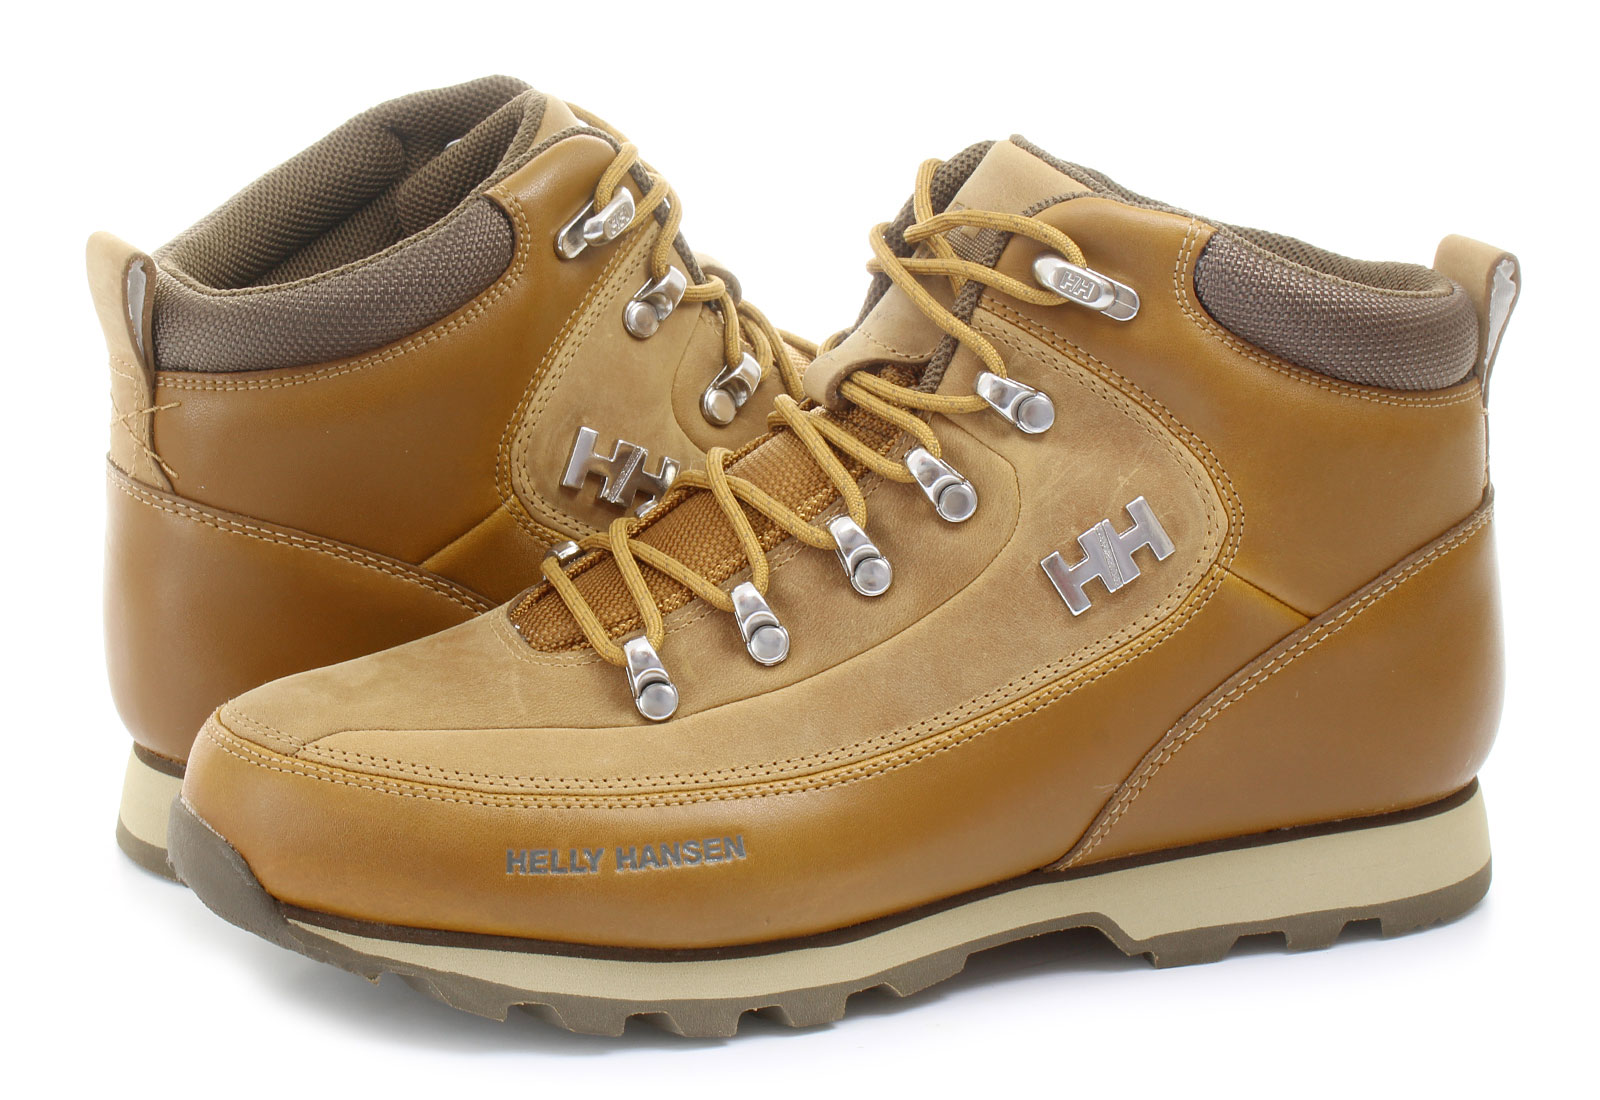 Helly hansen w the forester | Helly hansen, Buty i Produkty